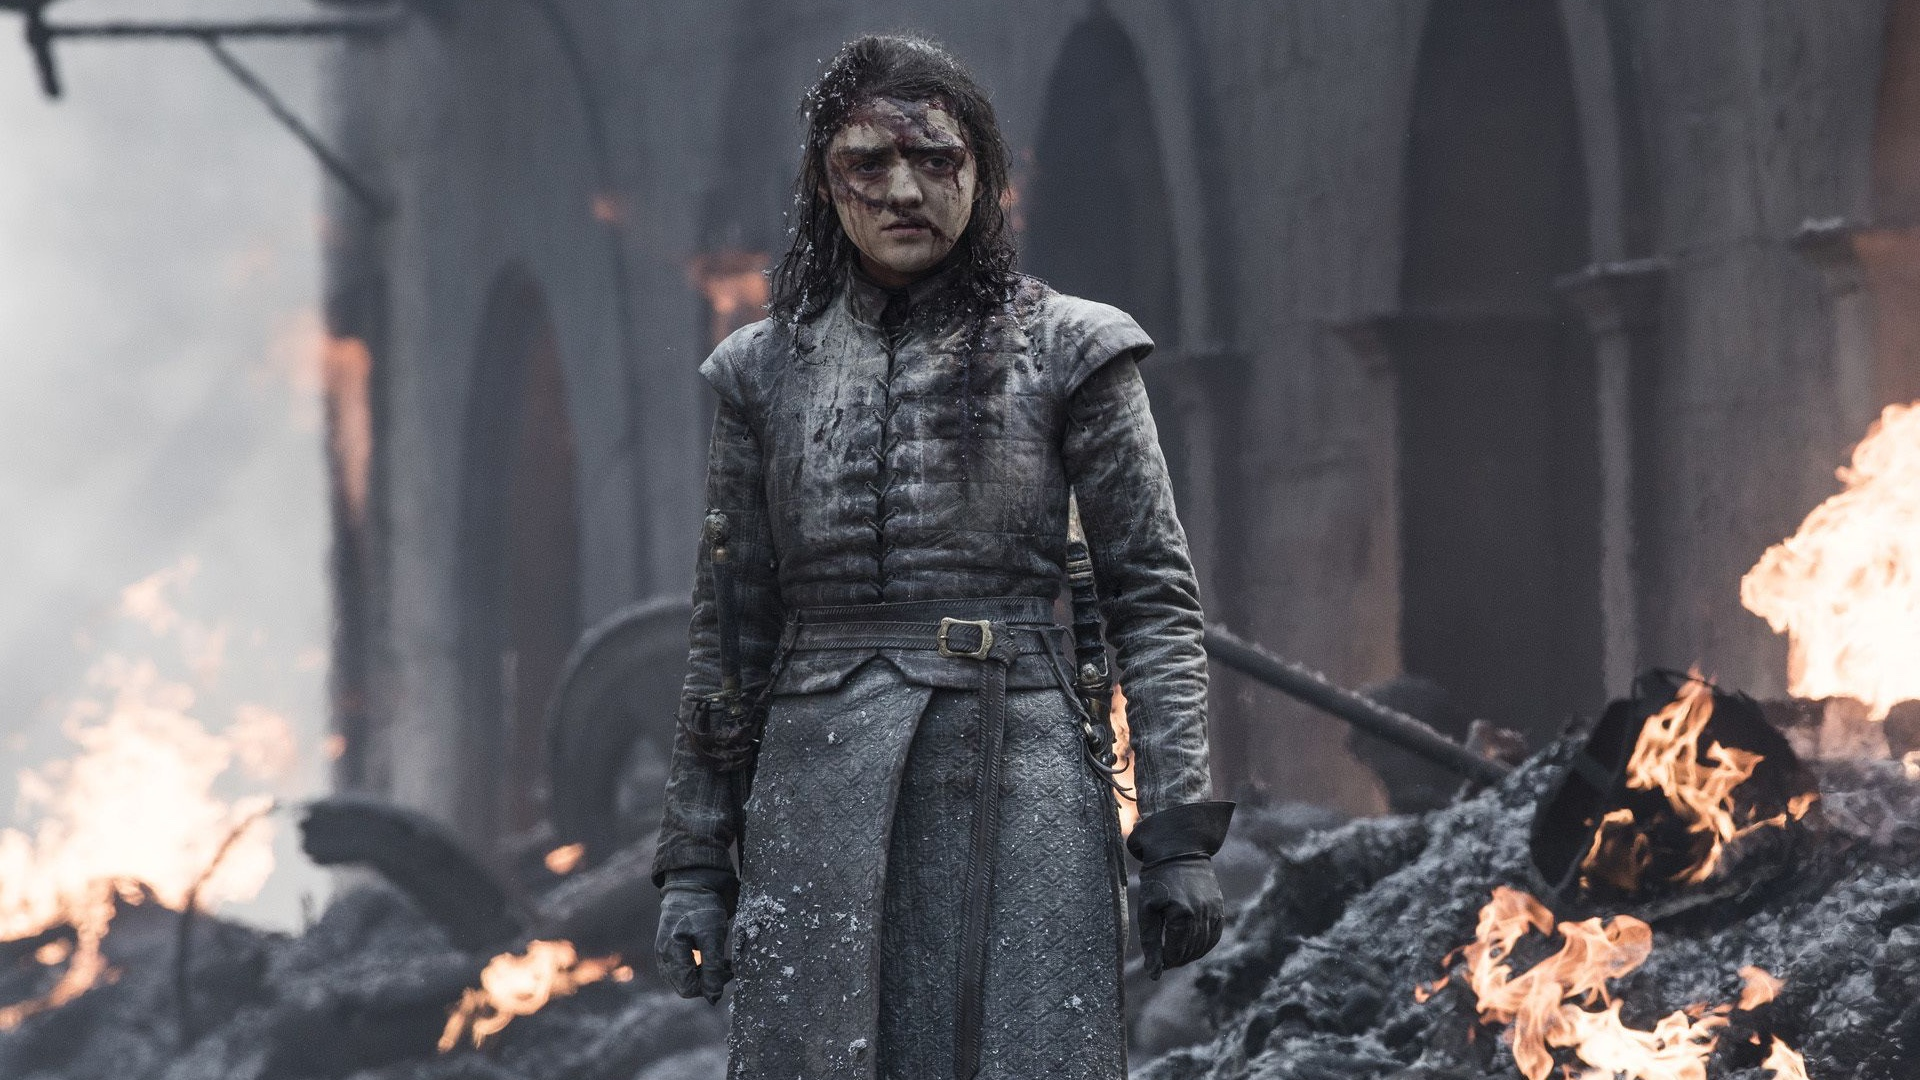 Game of Thrones season 8 Arya Stark theories spoilers